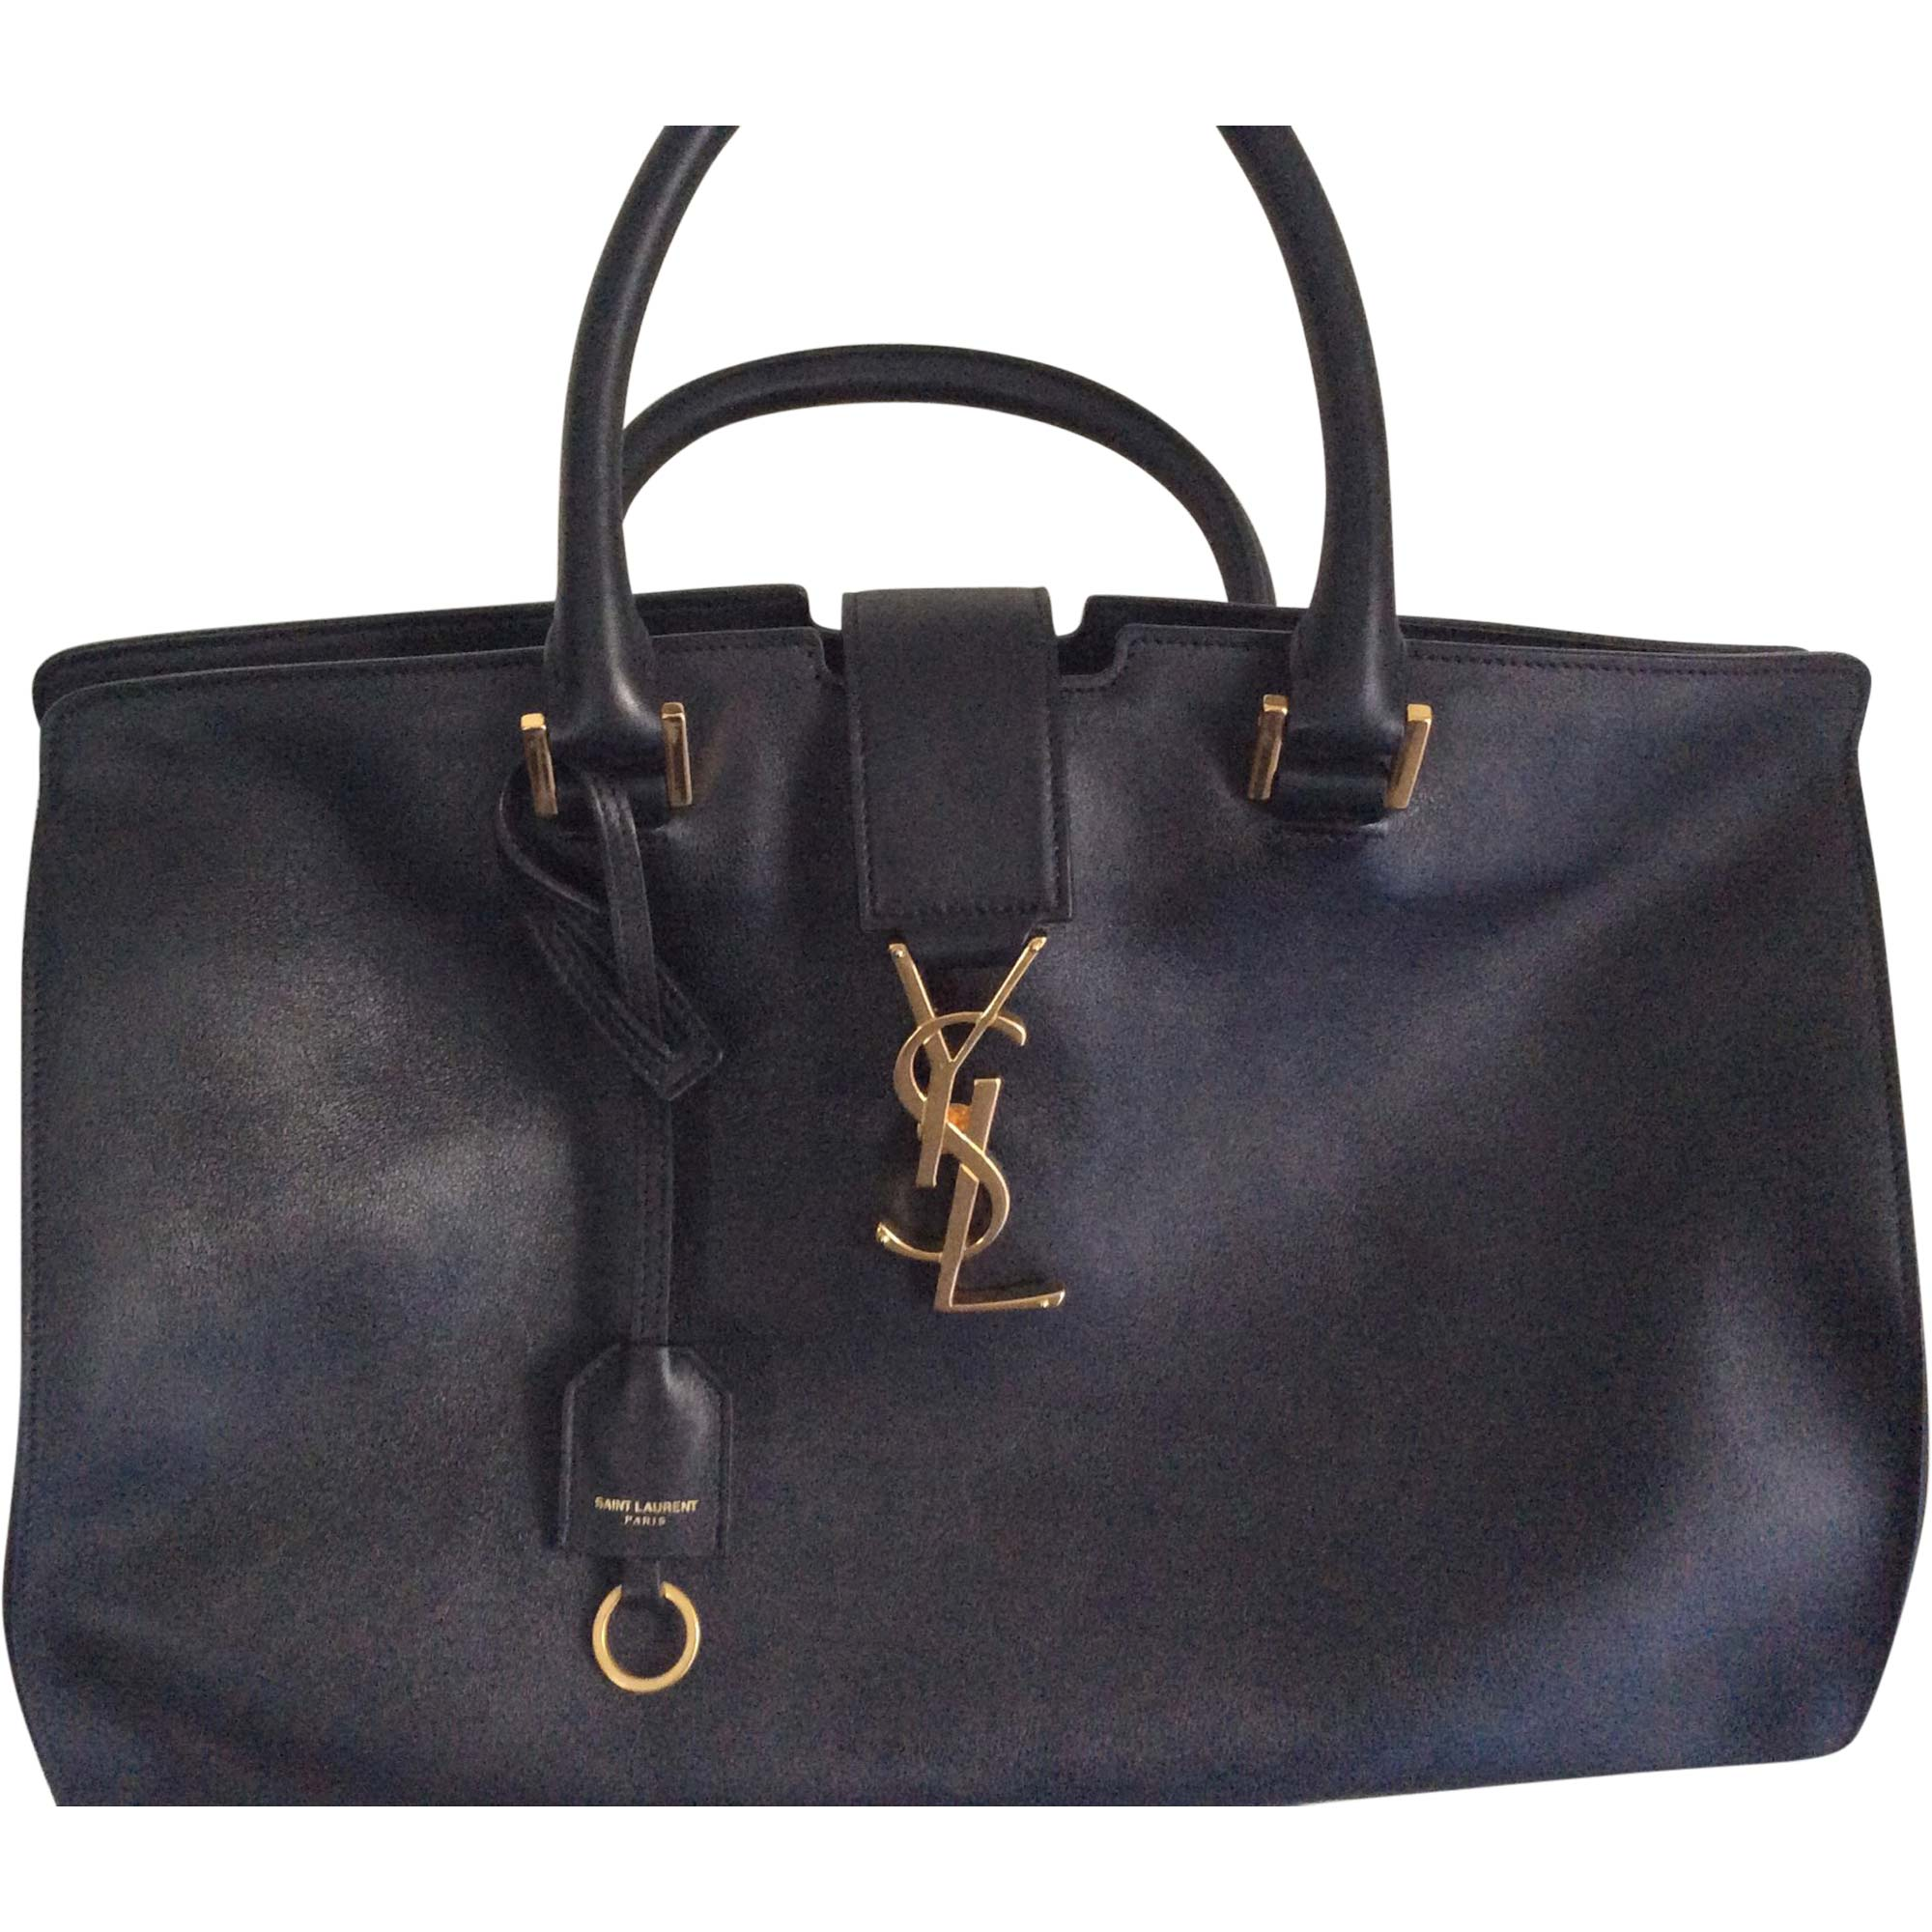 3dca5d6191 Sac à main en cuir YVES SAINT LAURENT Noir ...